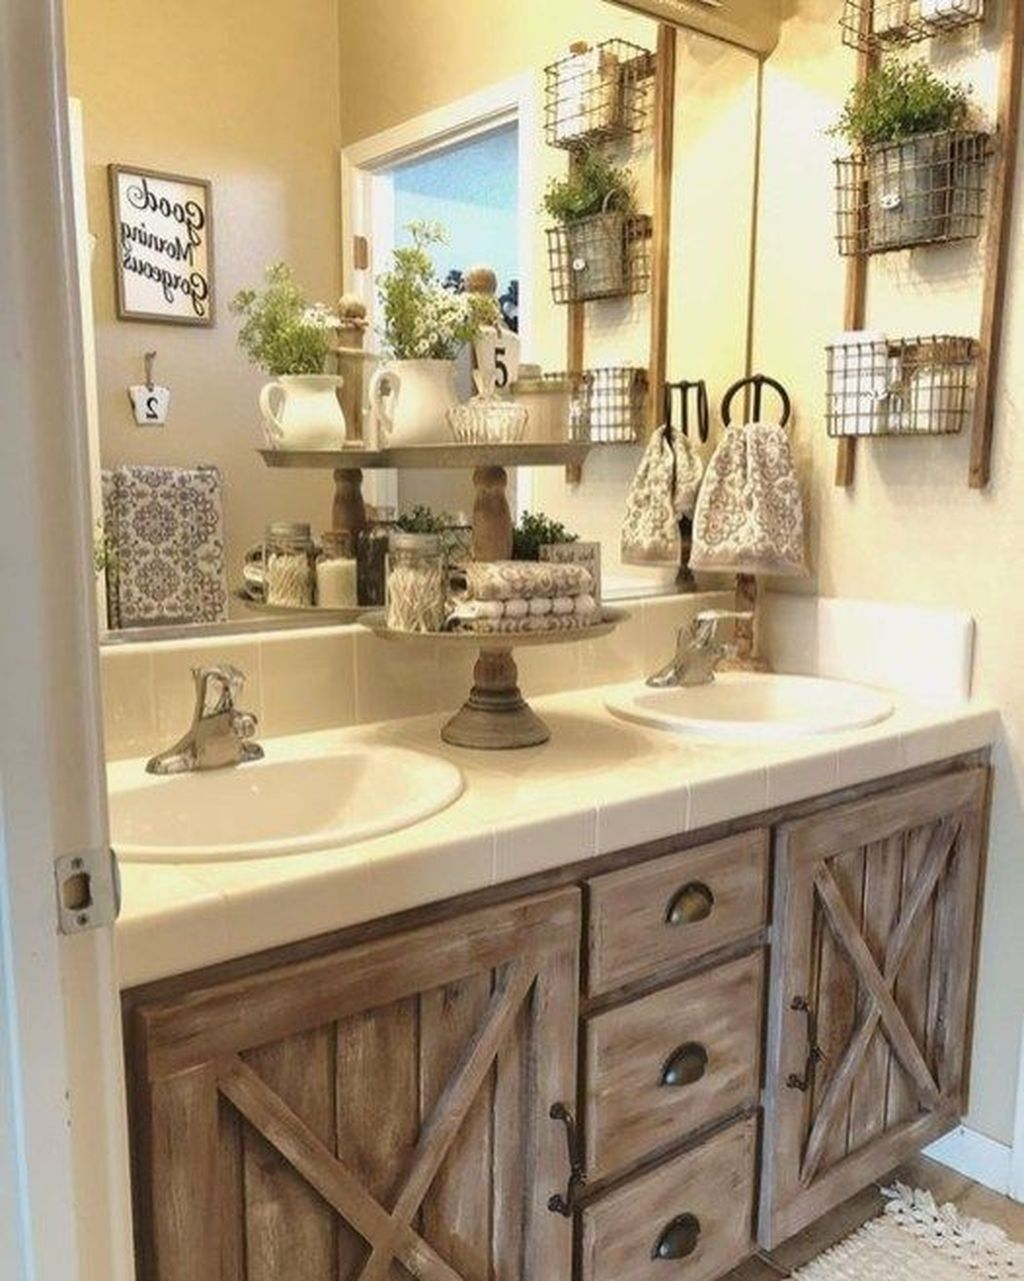 Beautiful Vintage Bathroom Decor Ideas Rustic Bathroom Wall Decor Rustic Bathrooms Bathroom Farmhouse Style